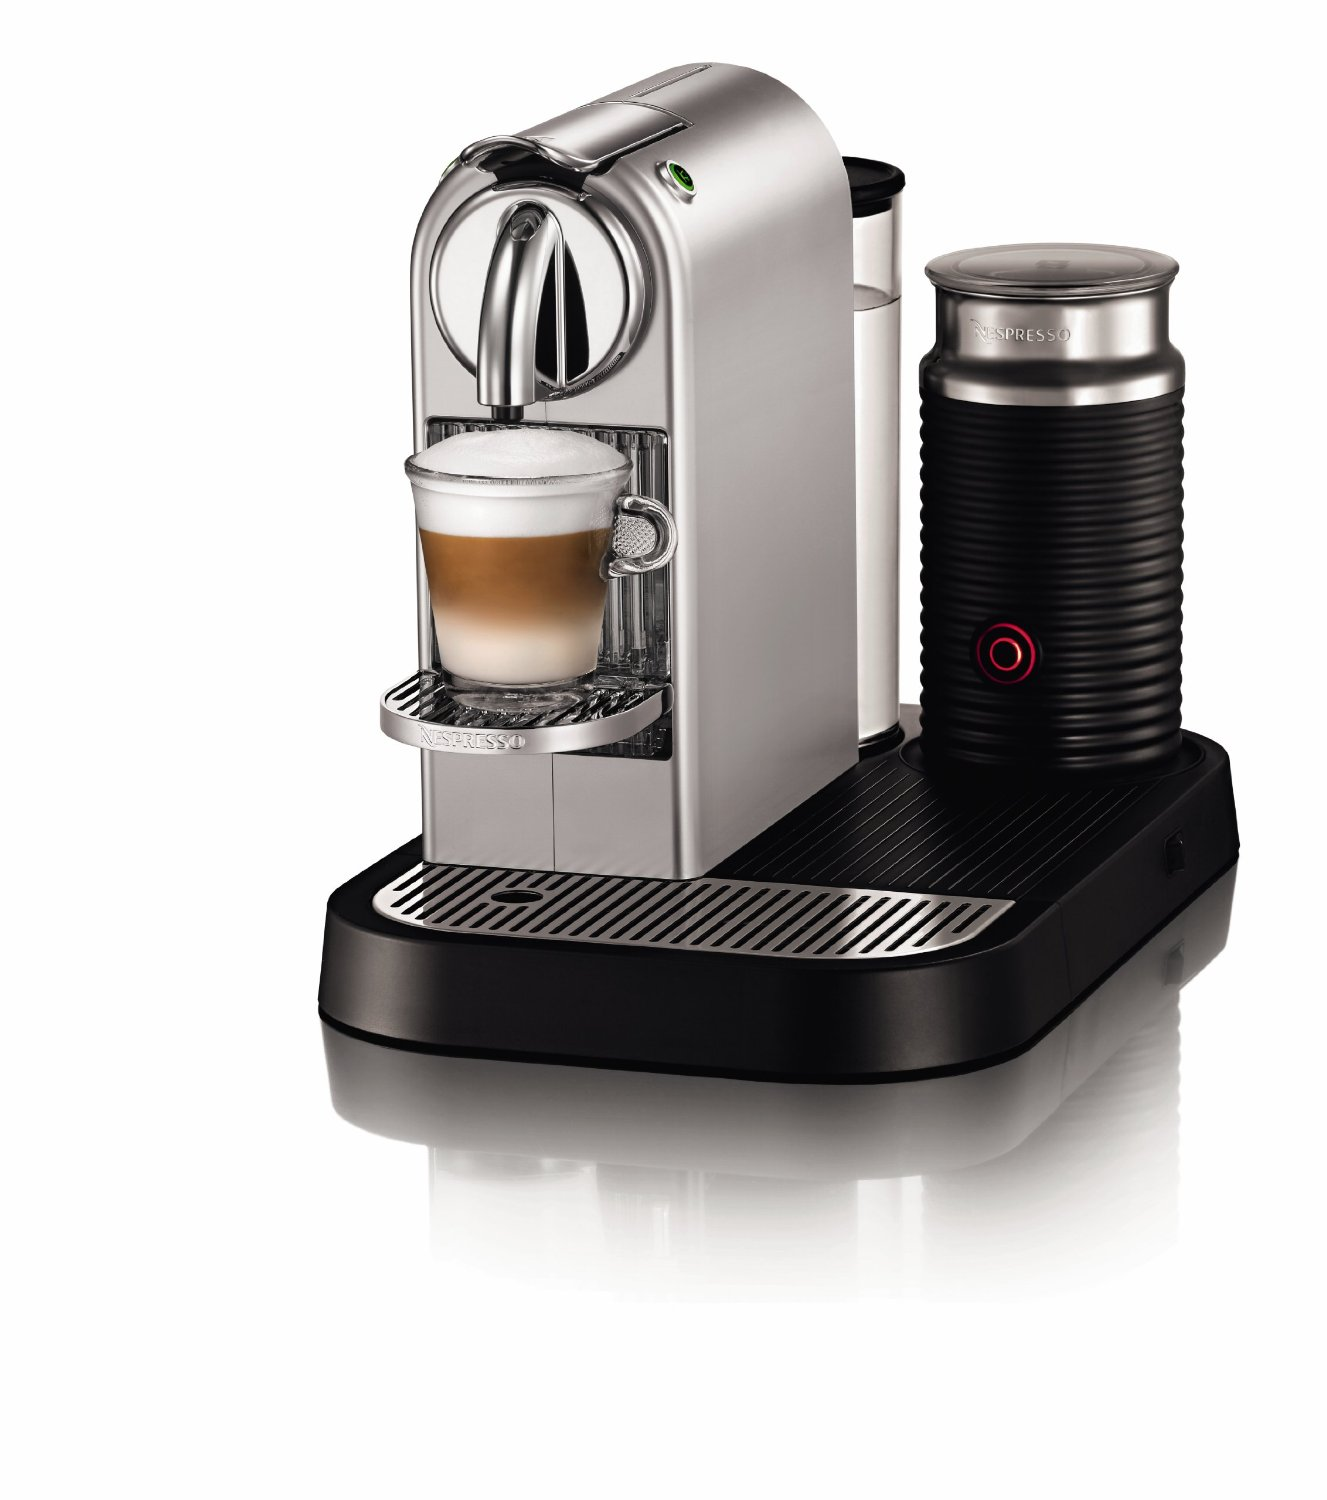 coffee machine that makes lattes